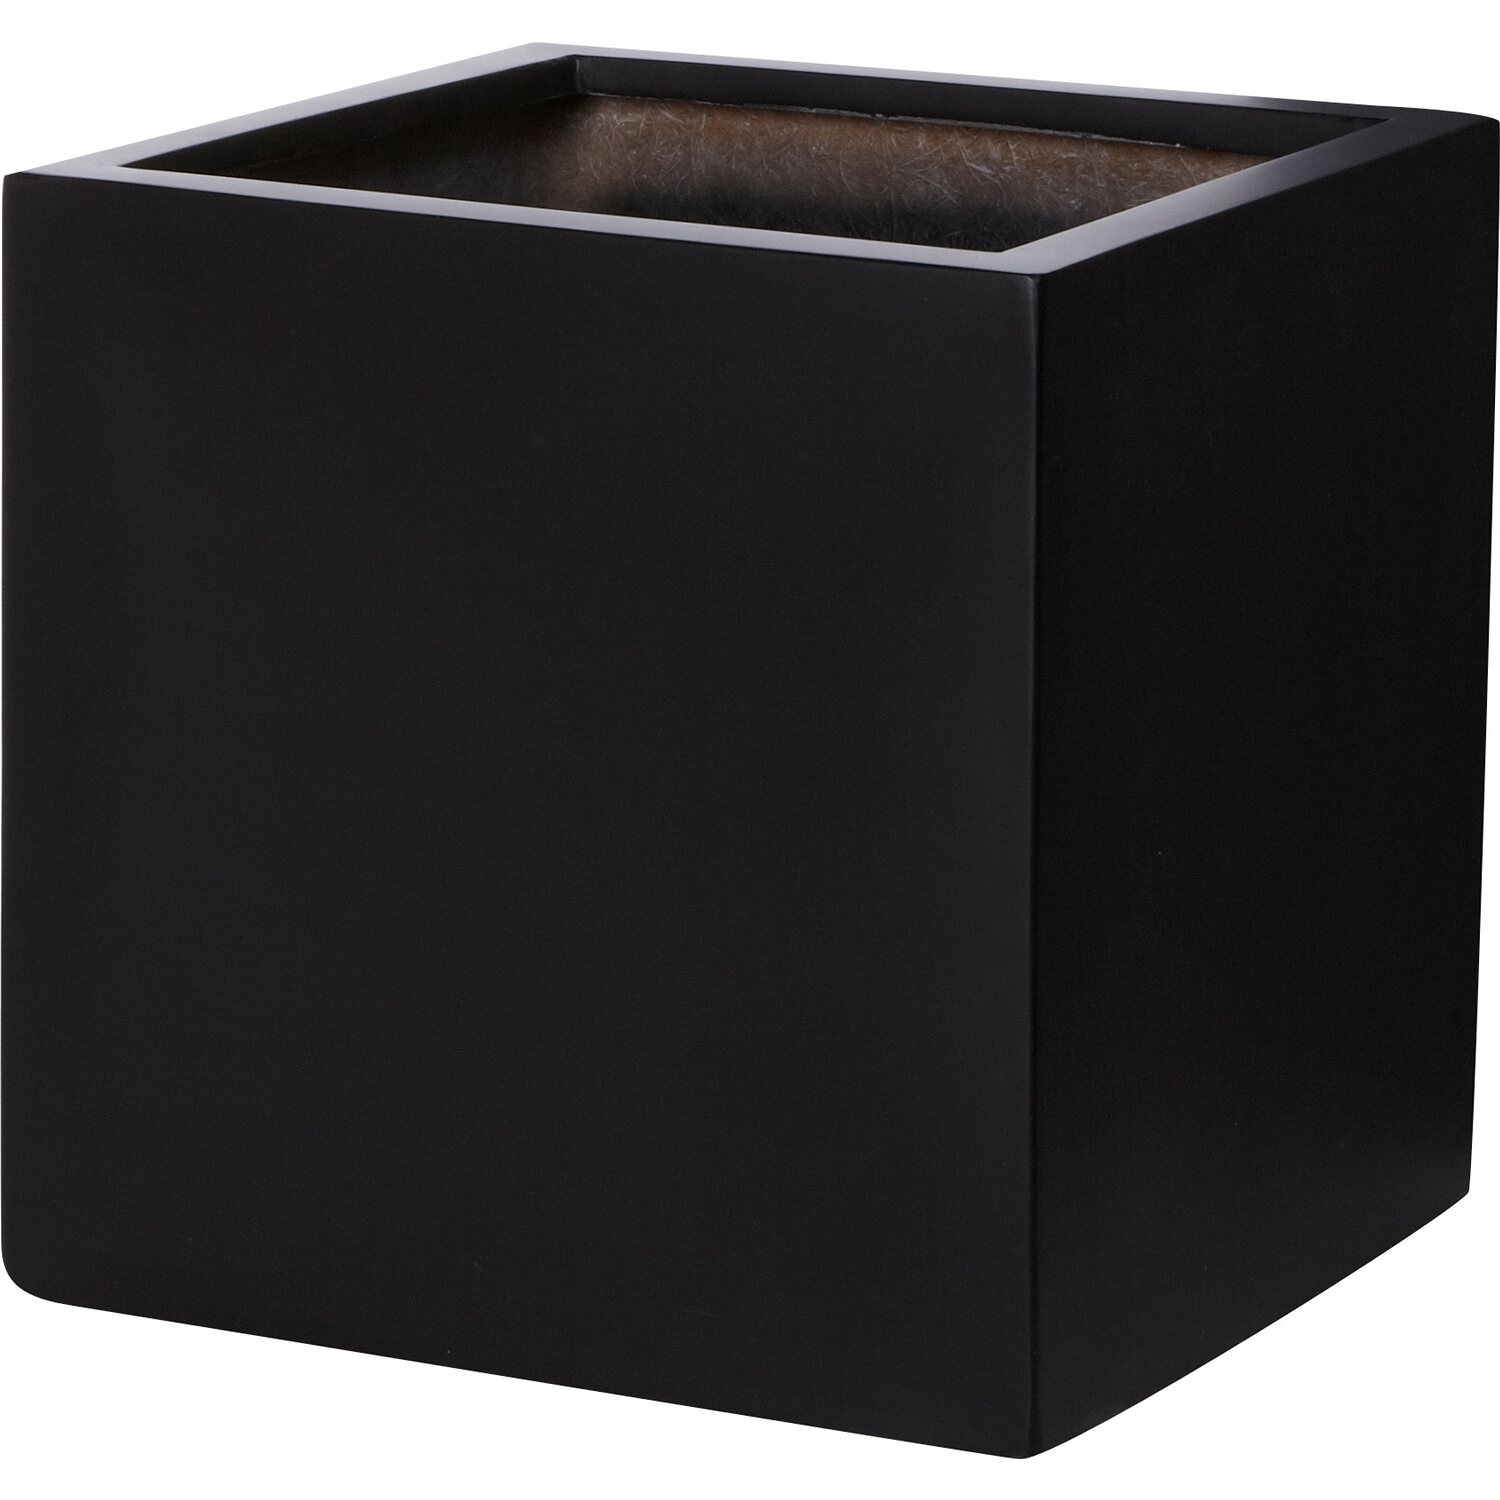 gartenfreude pflanzk bel fiberglas 30 cm x 30 cm anthrazit kaufen bei obi. Black Bedroom Furniture Sets. Home Design Ideas